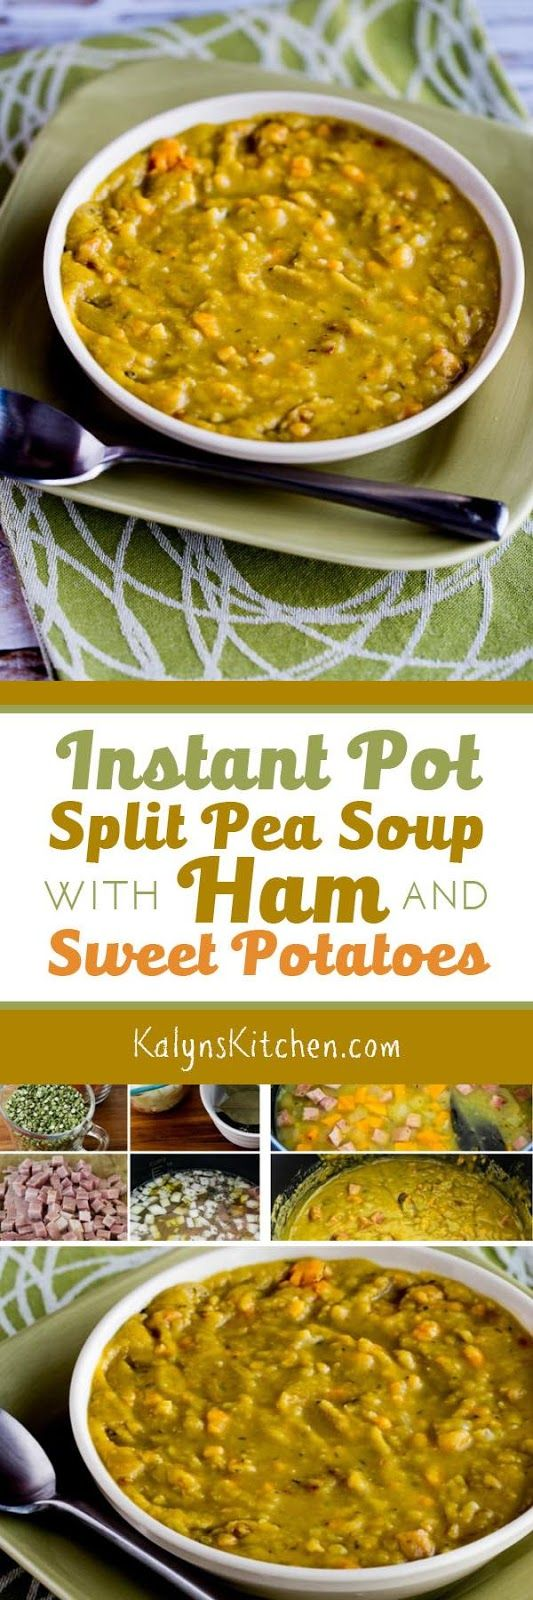 Use the Instant Pot, another electric pressure cooker, or a stove-top pressure cooker to make this delicious Split Pea Soup with Ham and Sweet Potatoes. The recipe also has suggestions if you prefer to make this a lower-carb version of split pea soup. [found on KalynsKitchen.com]